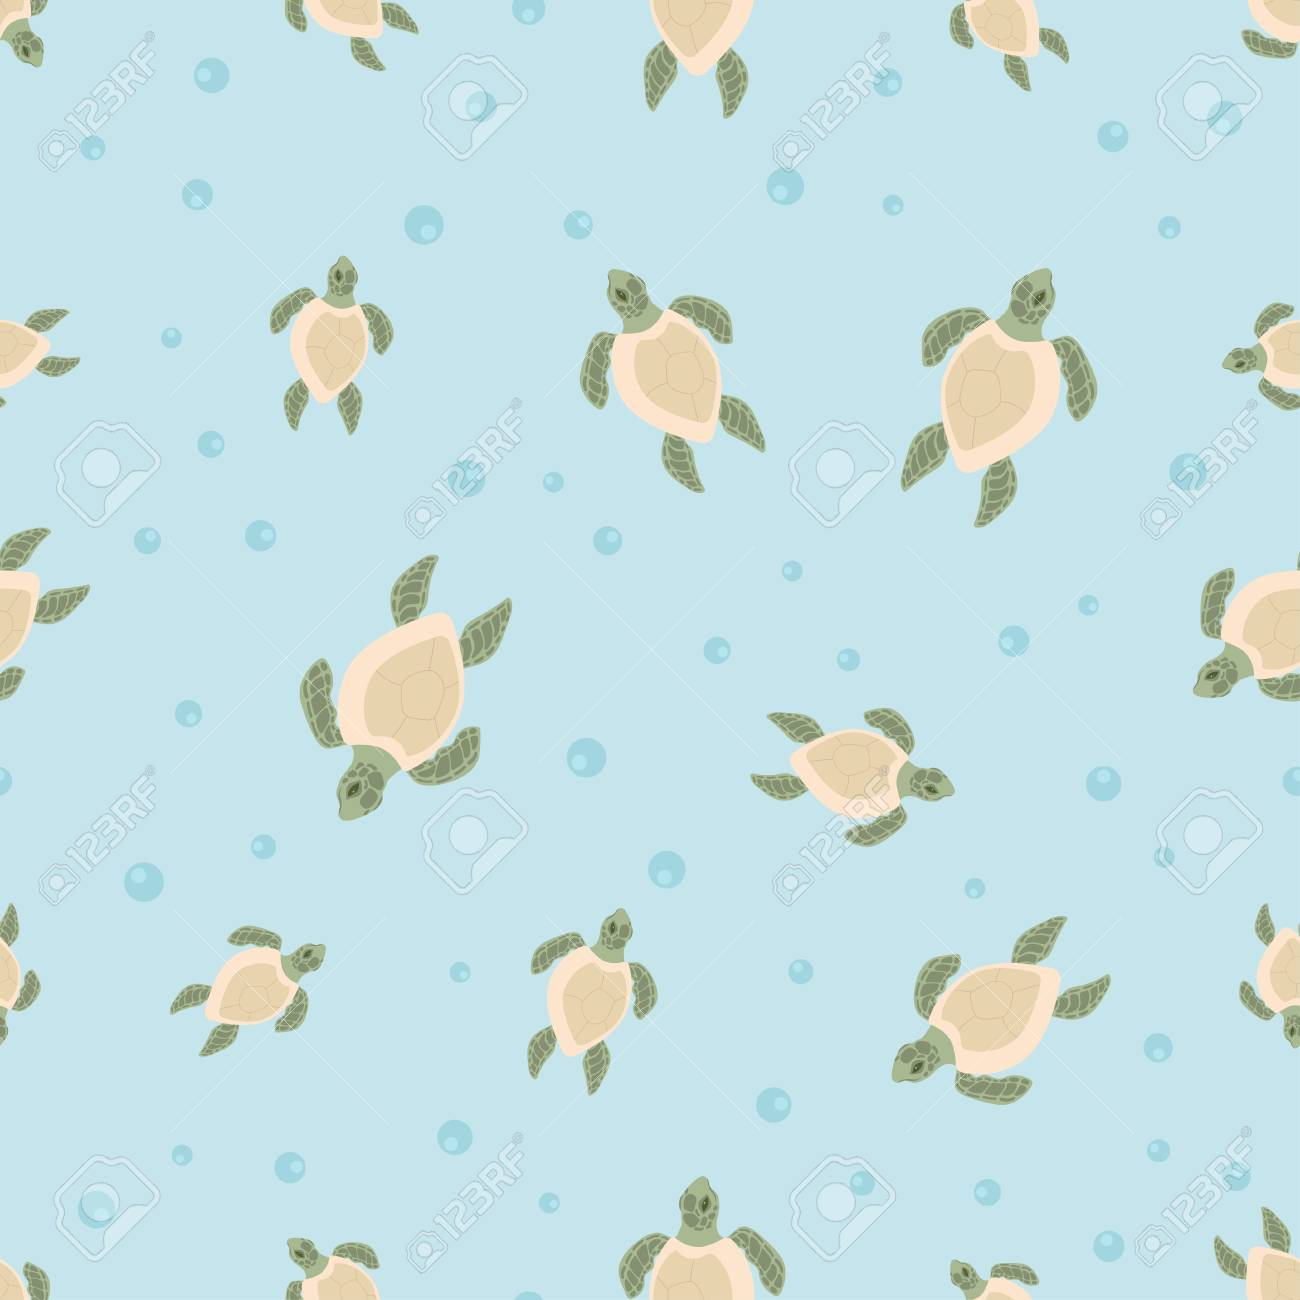 Seamless Pattern With Cute Turtles In Blue Water With Air Bubbles